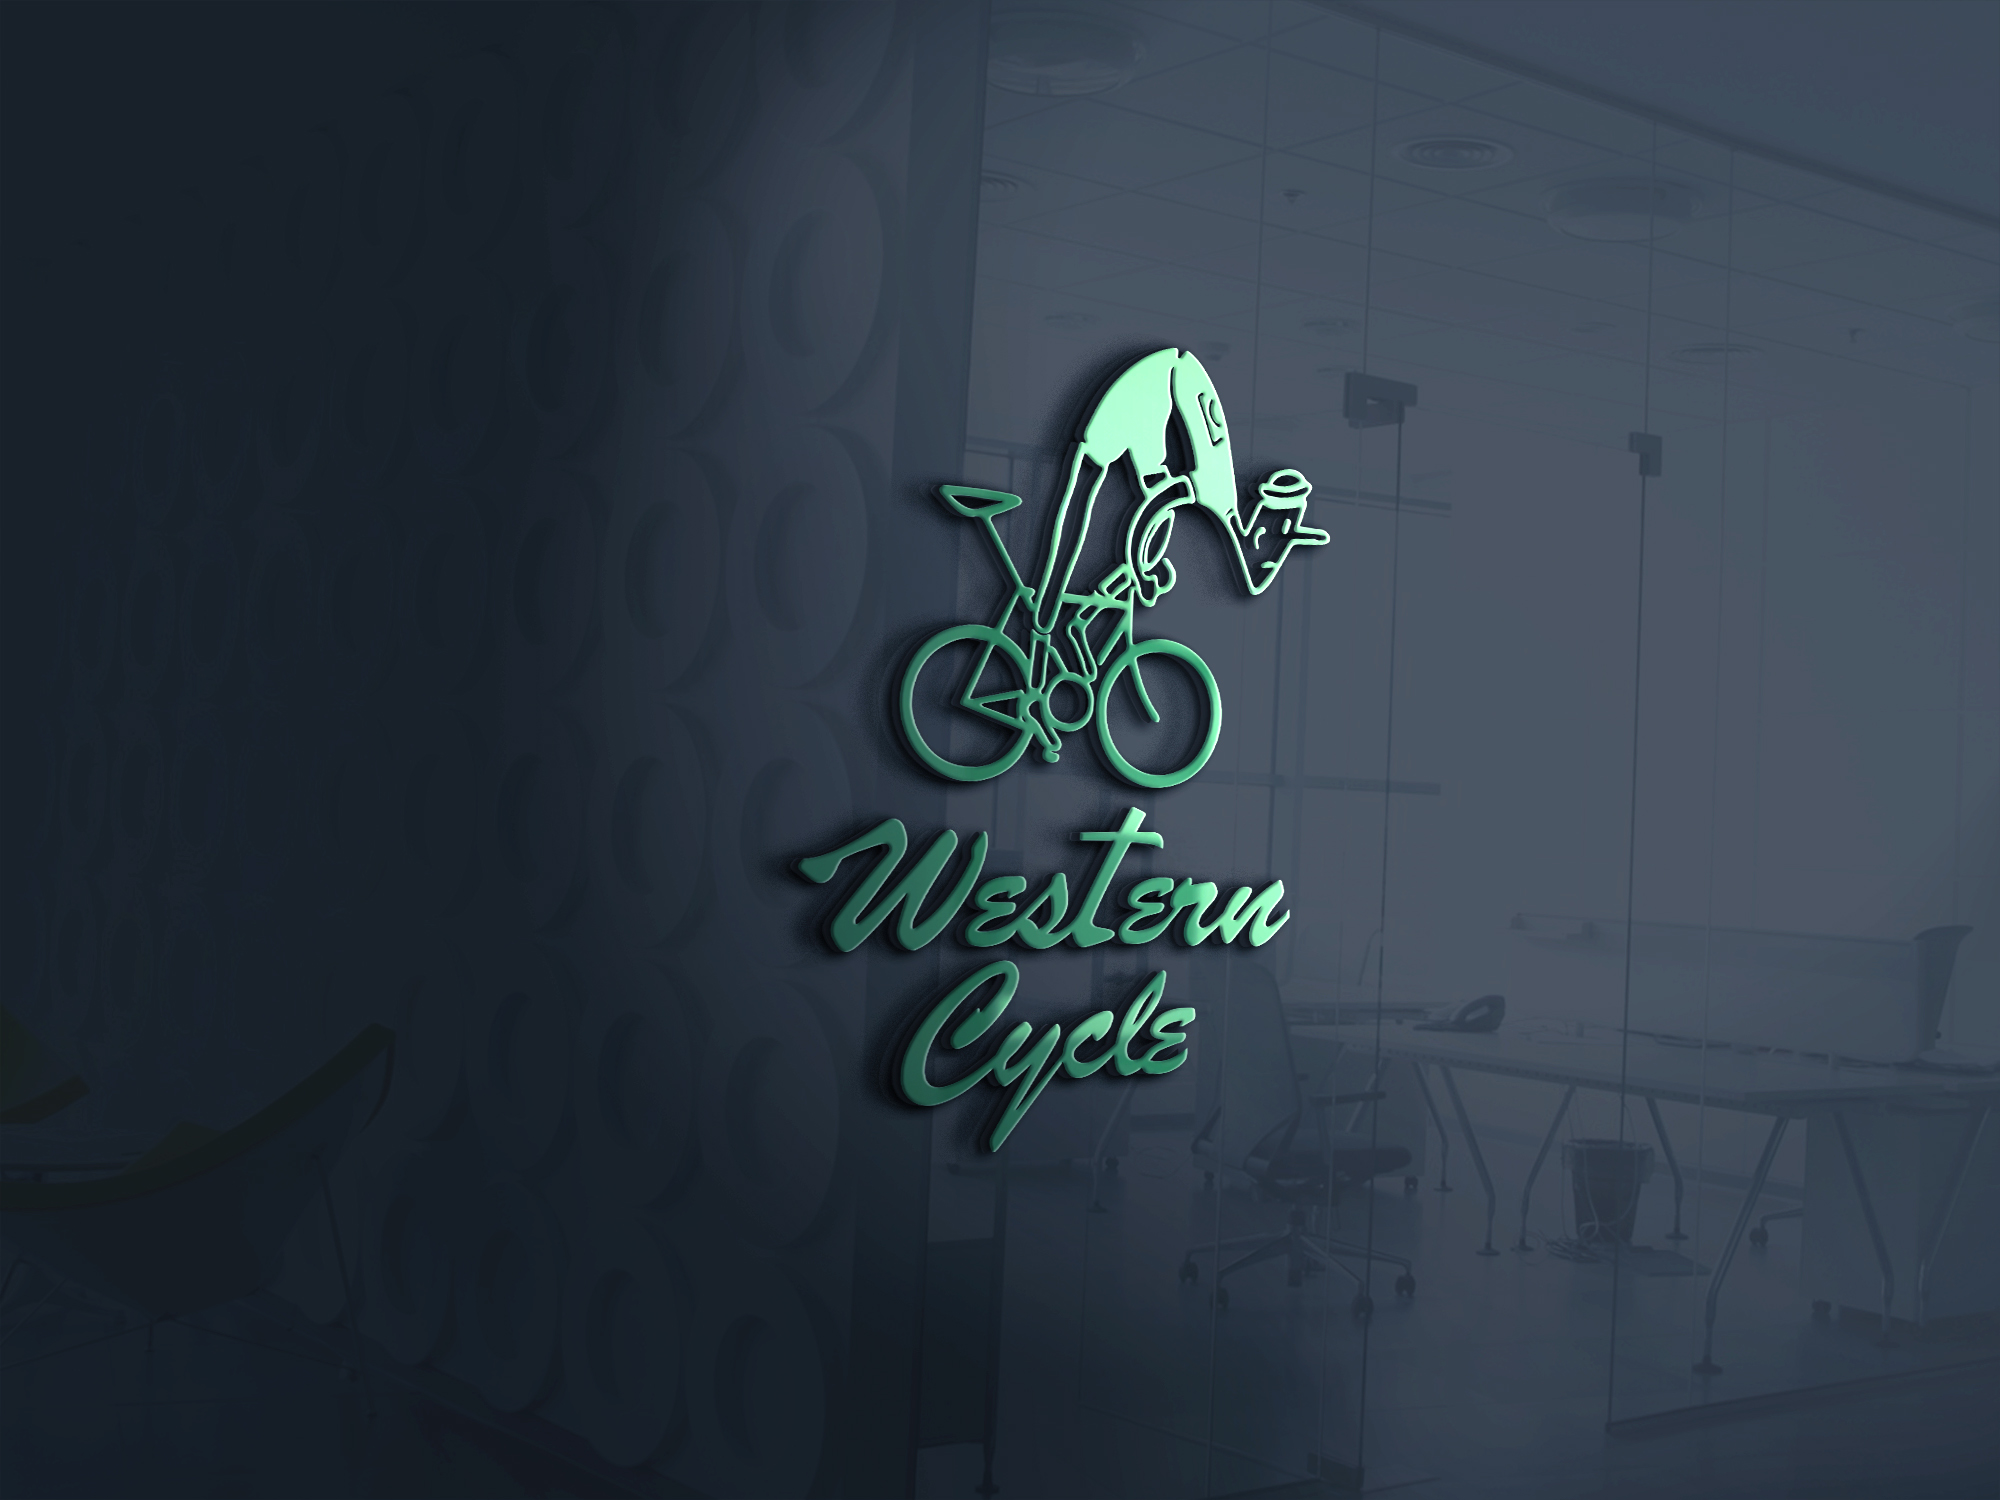 convert your transparent logo into 3D within 8-24 hours